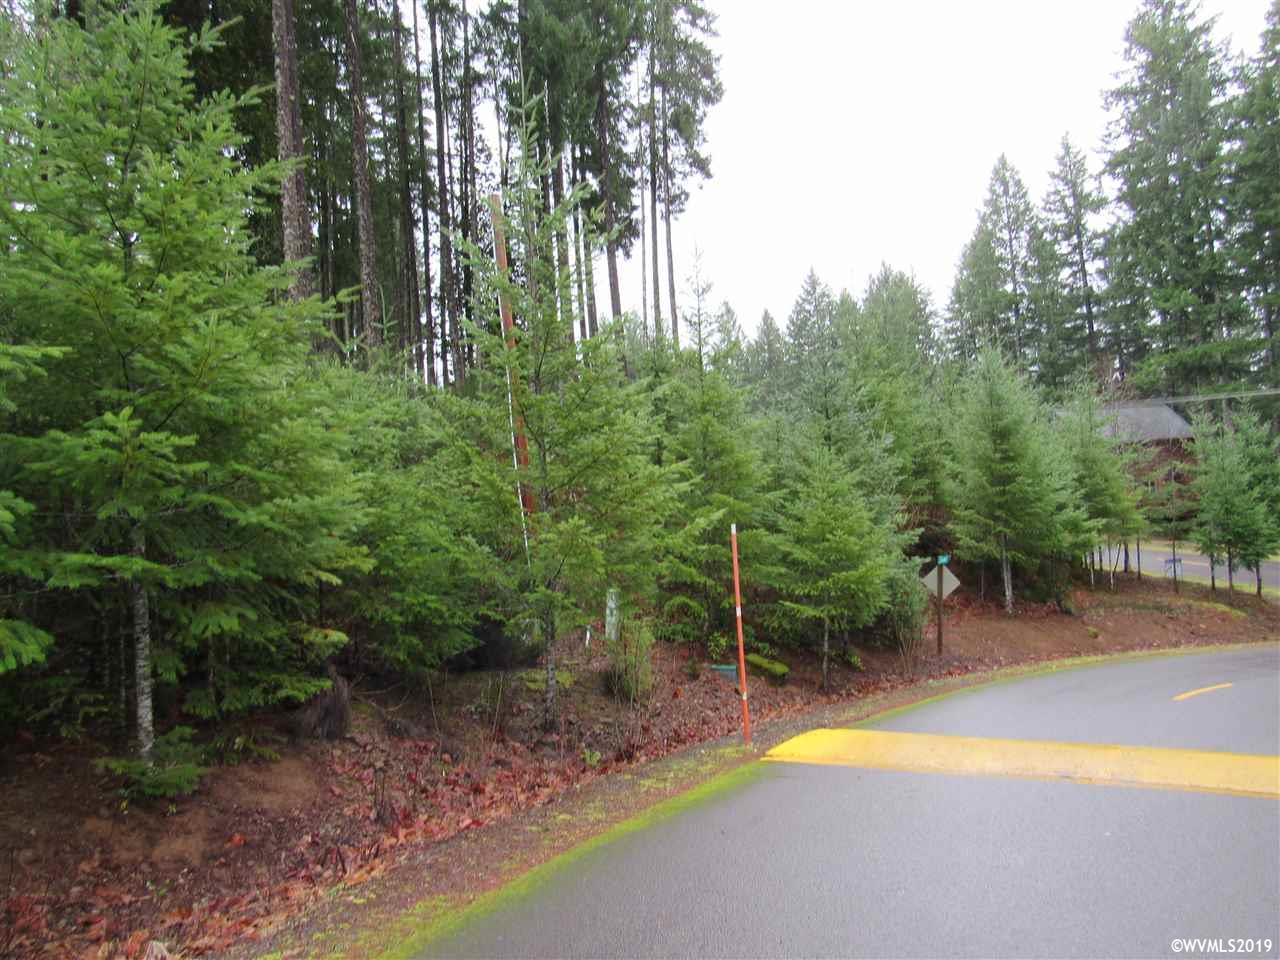 290 Scott Av, Detroit, Oregon 97342, ,Lot (under 1 Acre),For sale,290 Scott Av,743675